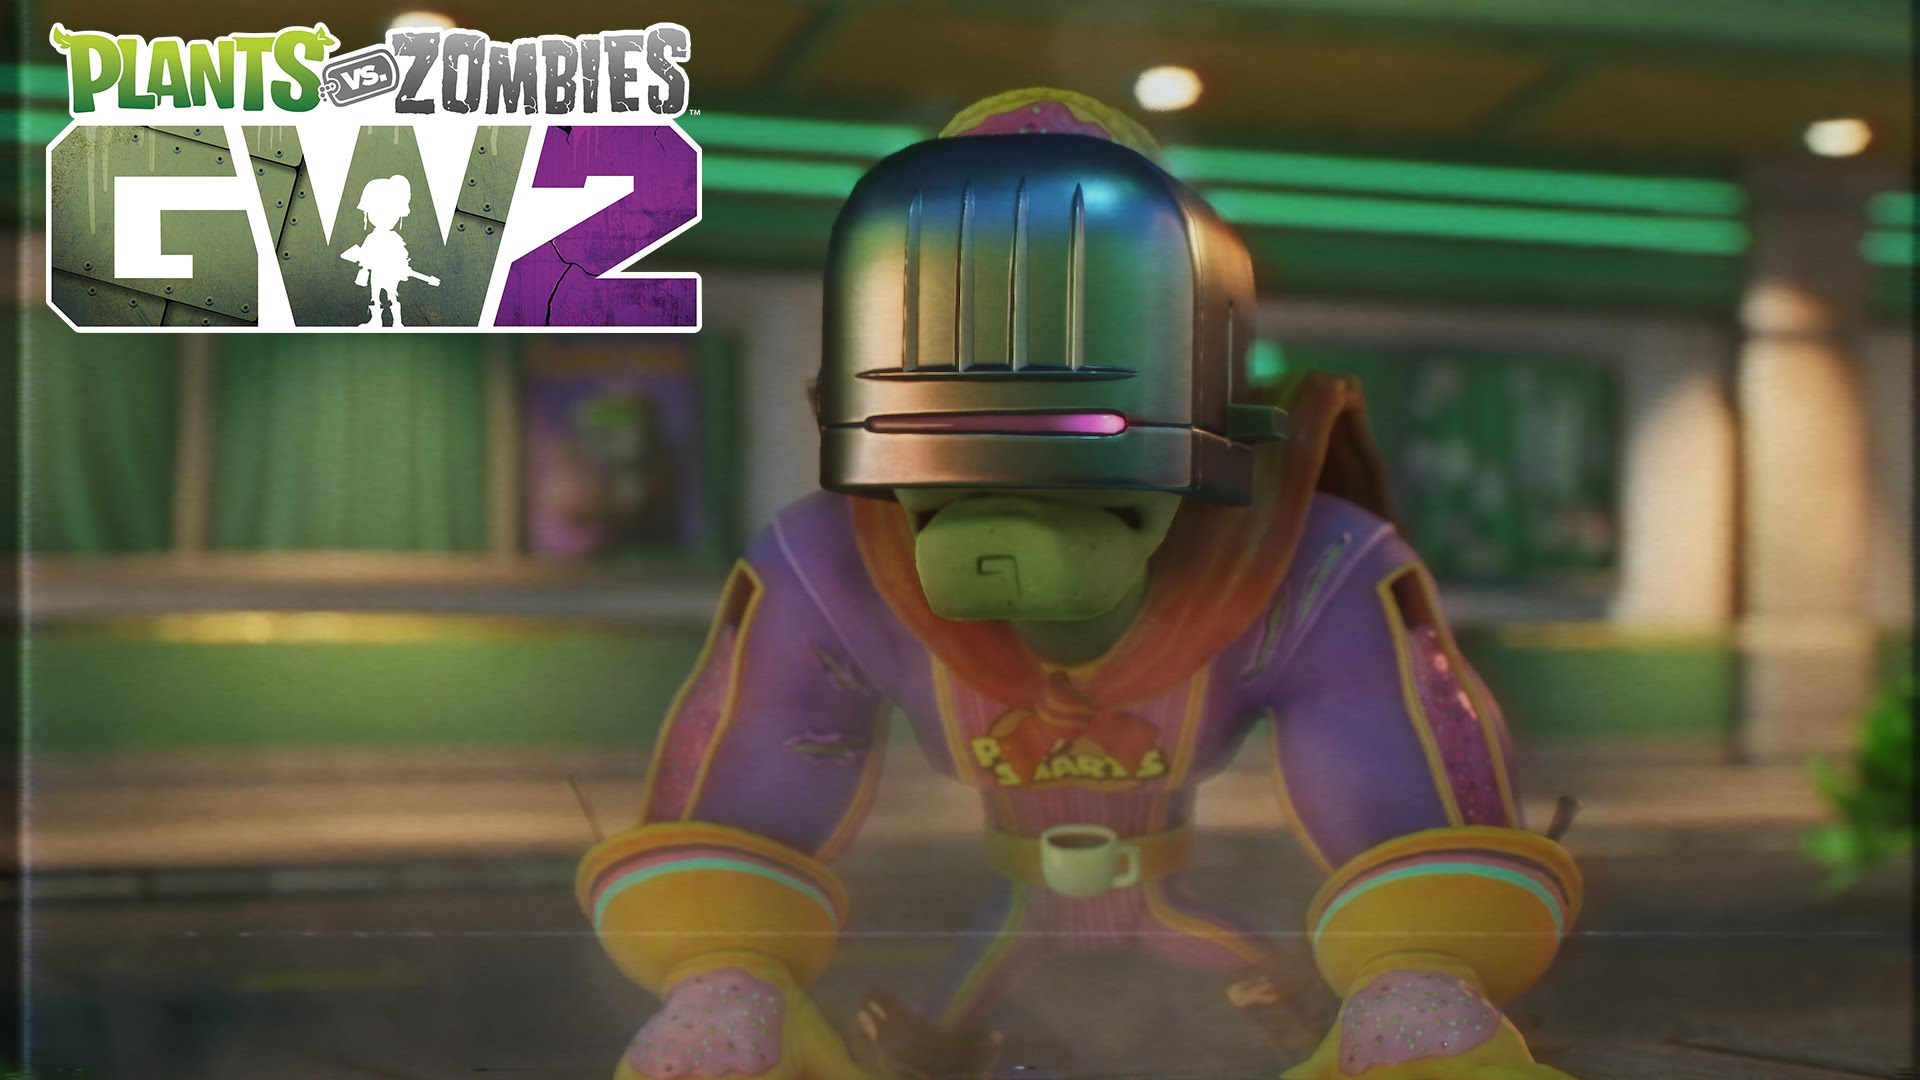 Title: Trouble in Zombopolis Trailer| Plants vs. Zombies Garden Warfare 2